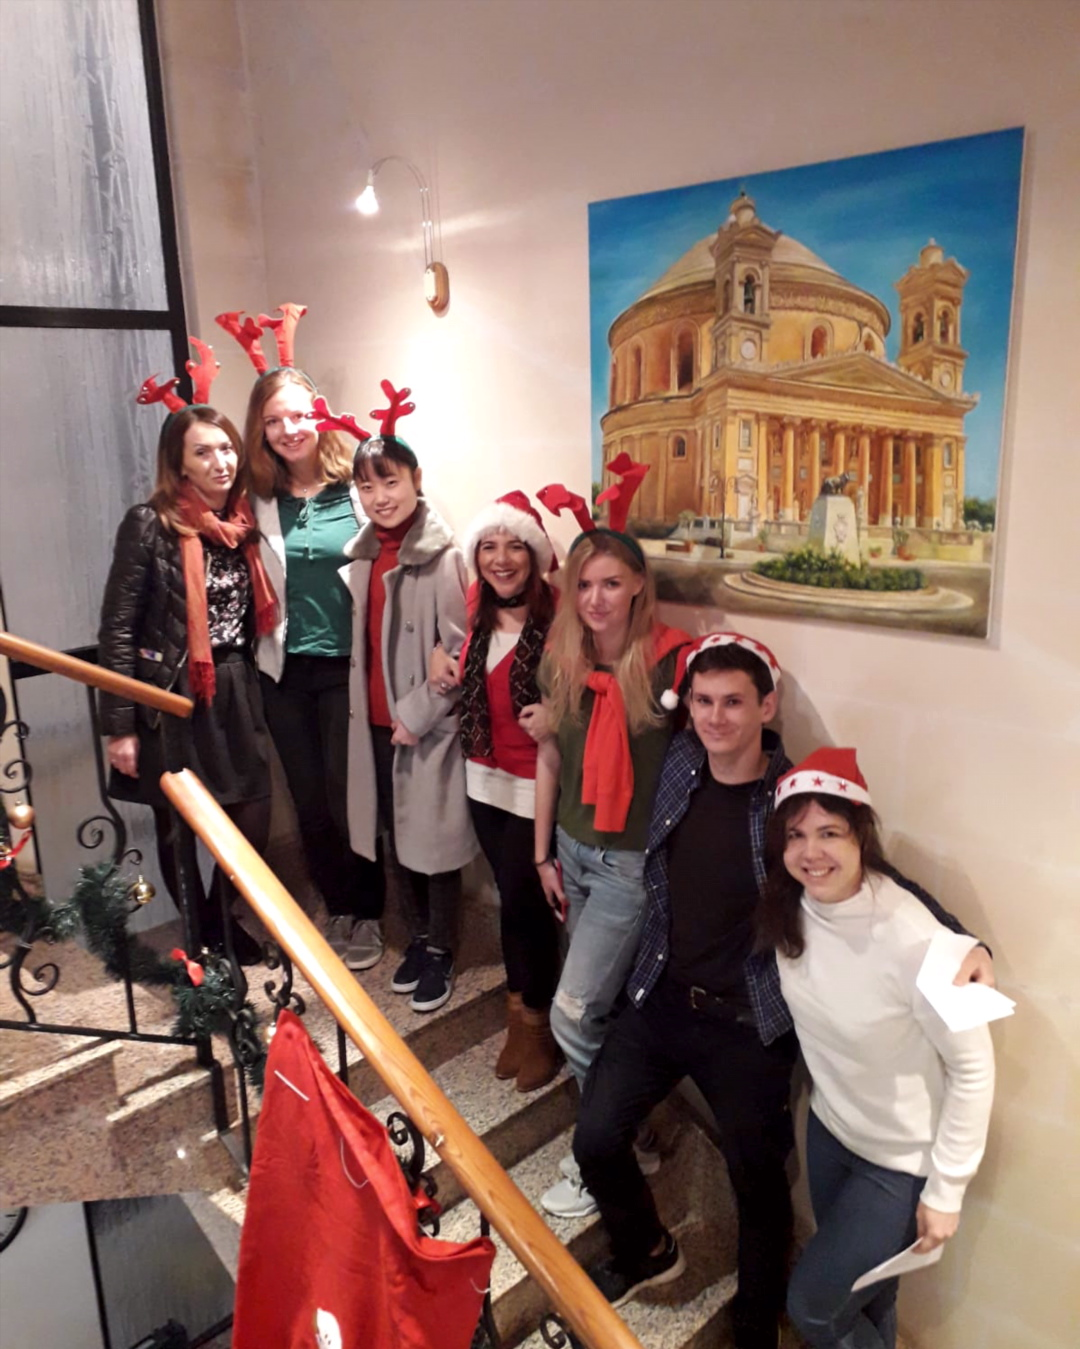 Gateway School of English GSE Christmas Video 2018 - the best English language school to study English in Malta and take an English course in Christmas - Weihnachten Navidad Noel Natale Natal